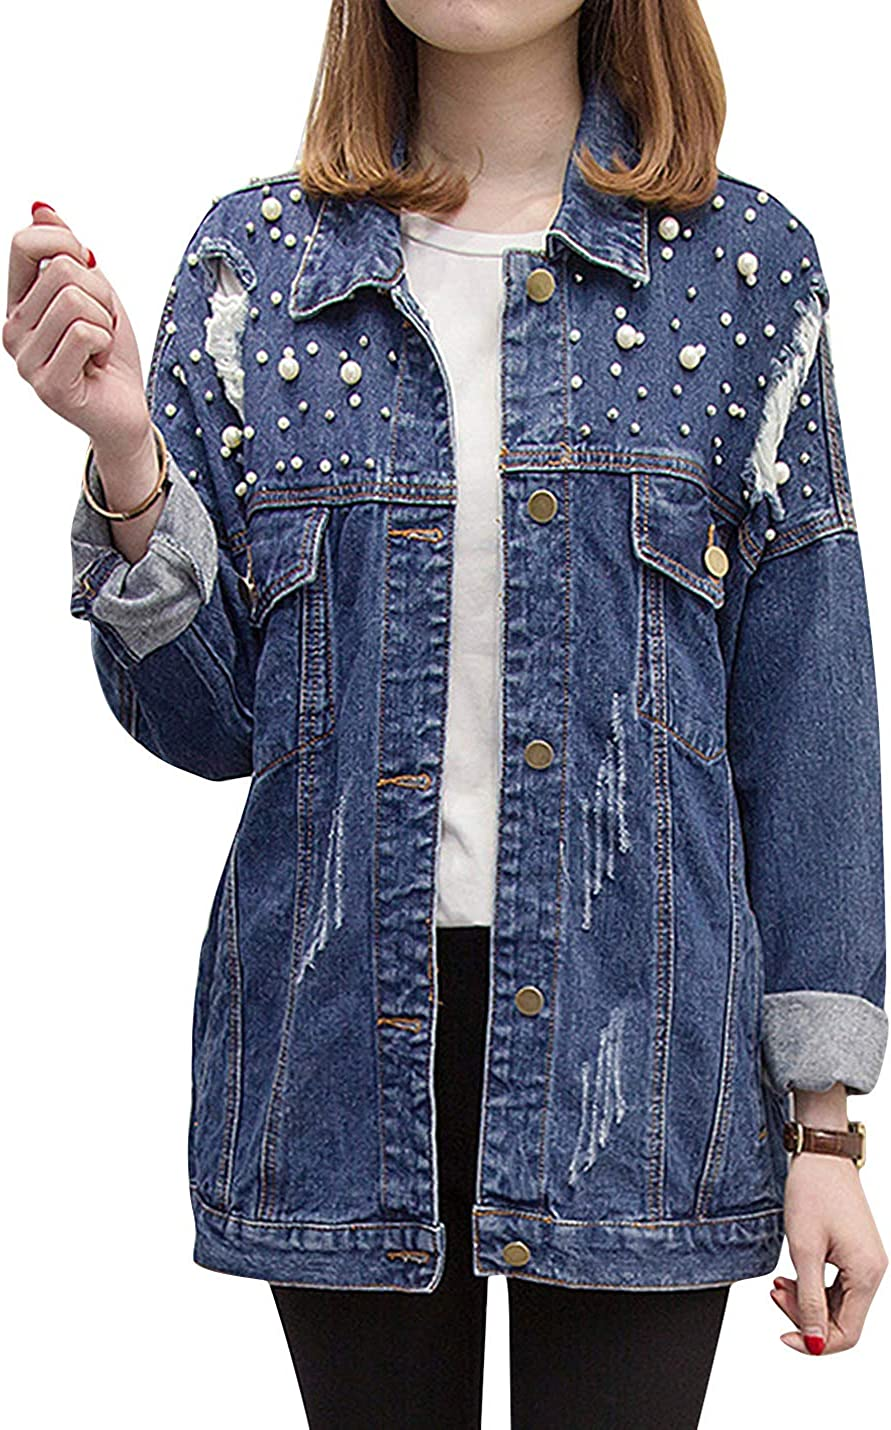 ZGZZ7 Women's Vintage Ripped Denim Jackets Buttons Beaded Pearls Casual Loose Fit Mid-Long Jean Coats